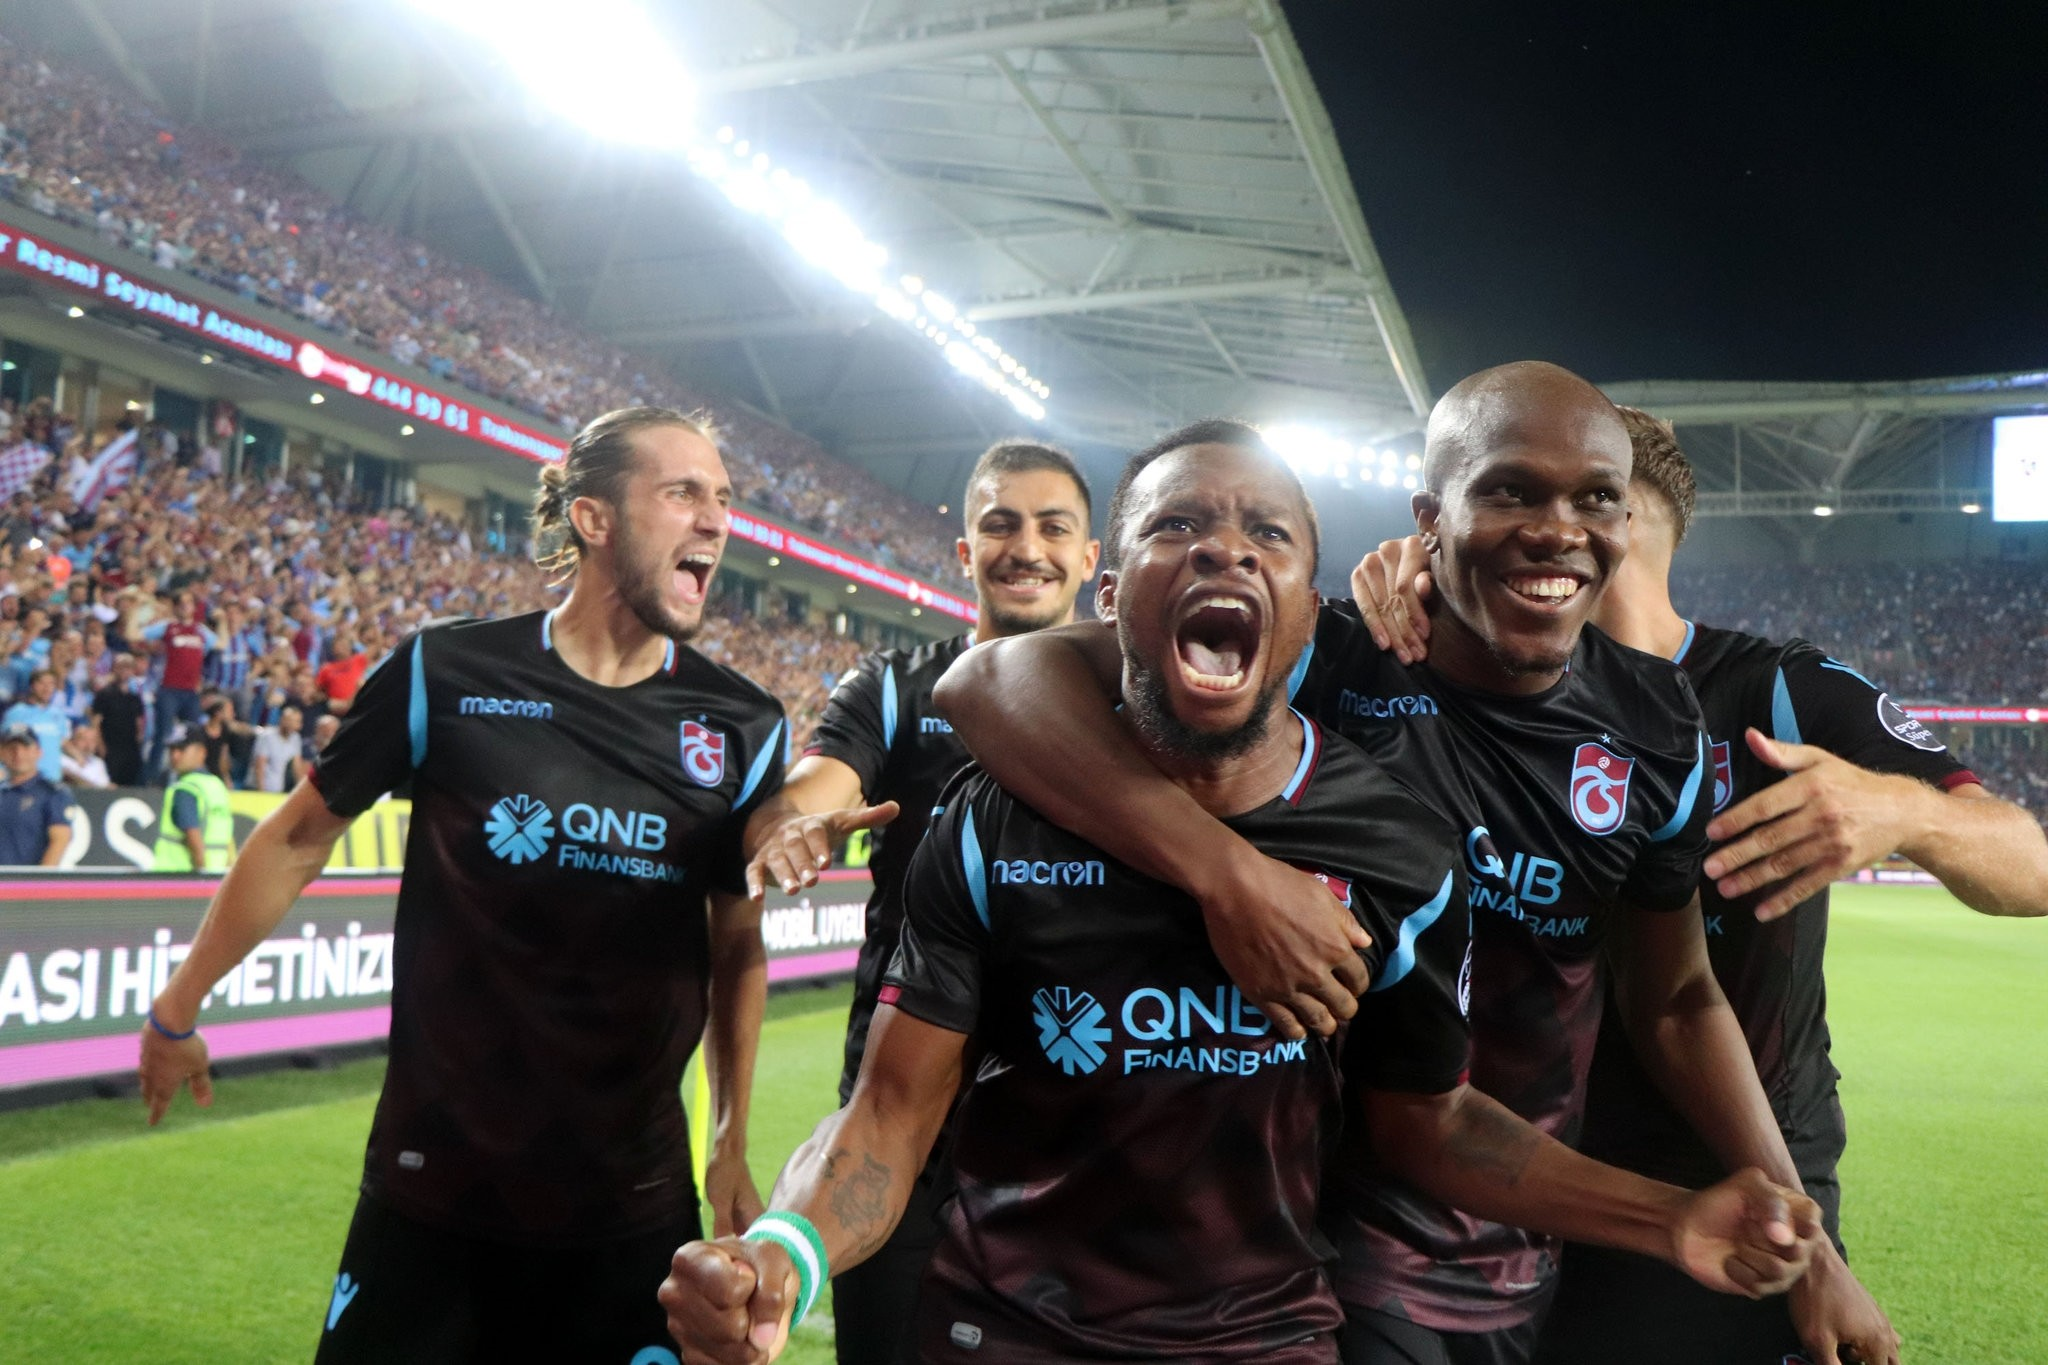 Trabzonspor players celebrate 4-0 win against Galatasaray on Saturday in front of their fans.